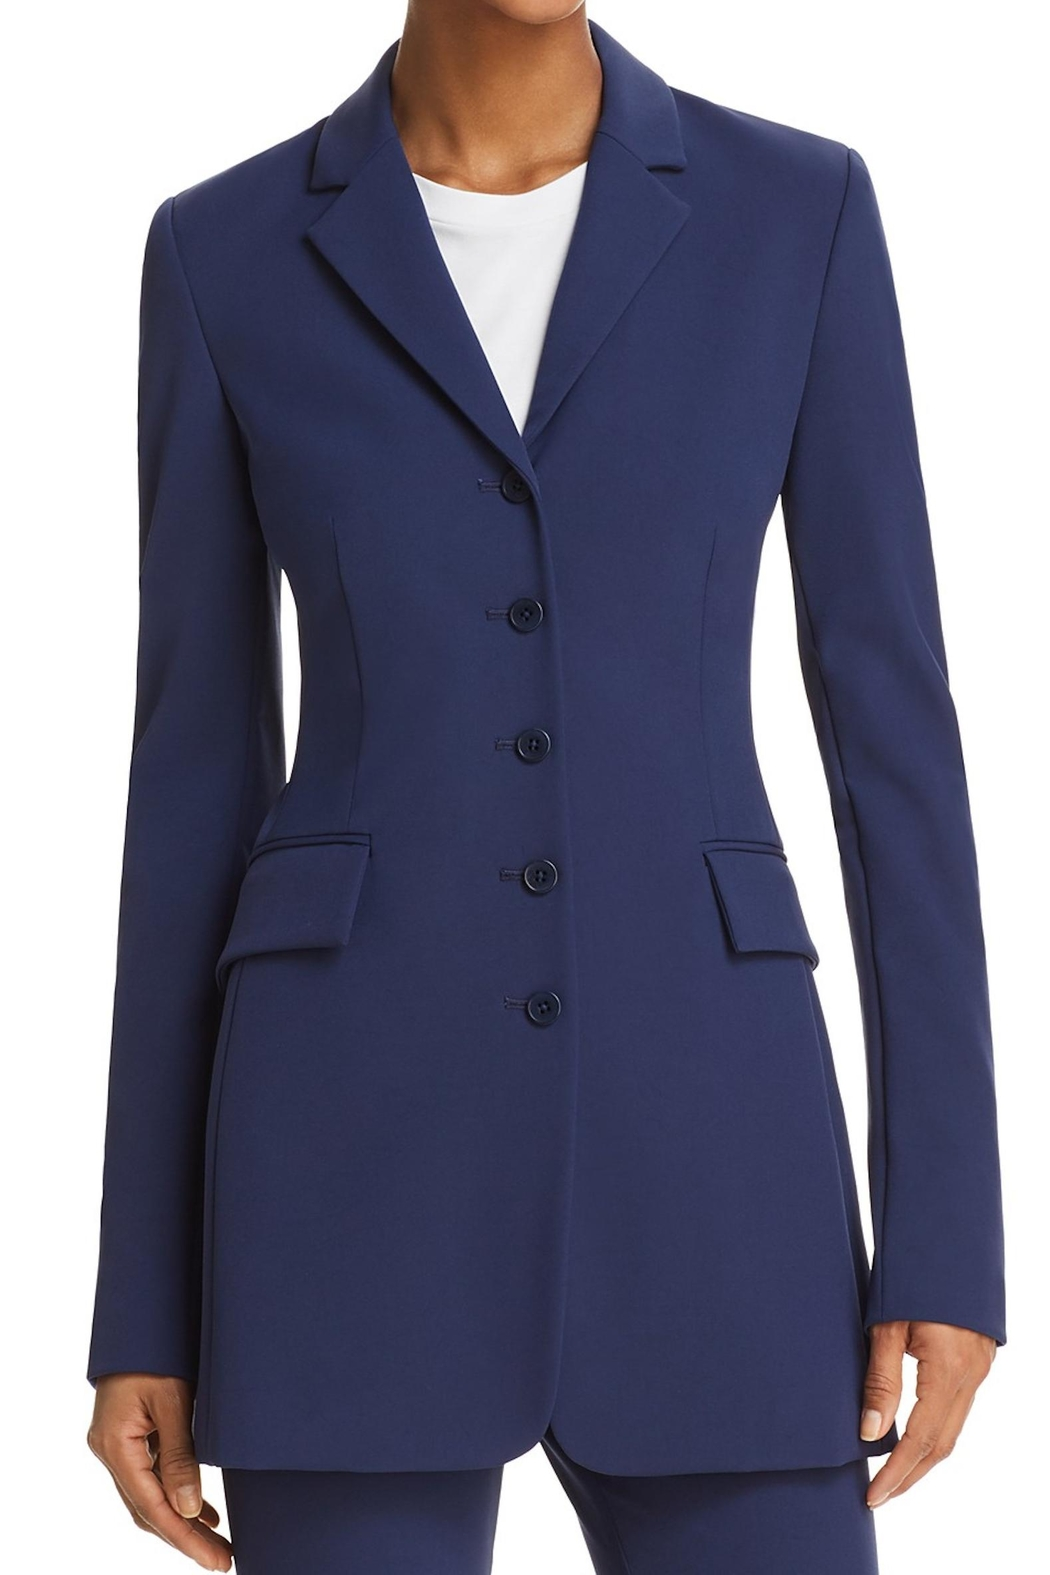 Theory Dark Blue Blazer - Front Cropped Image